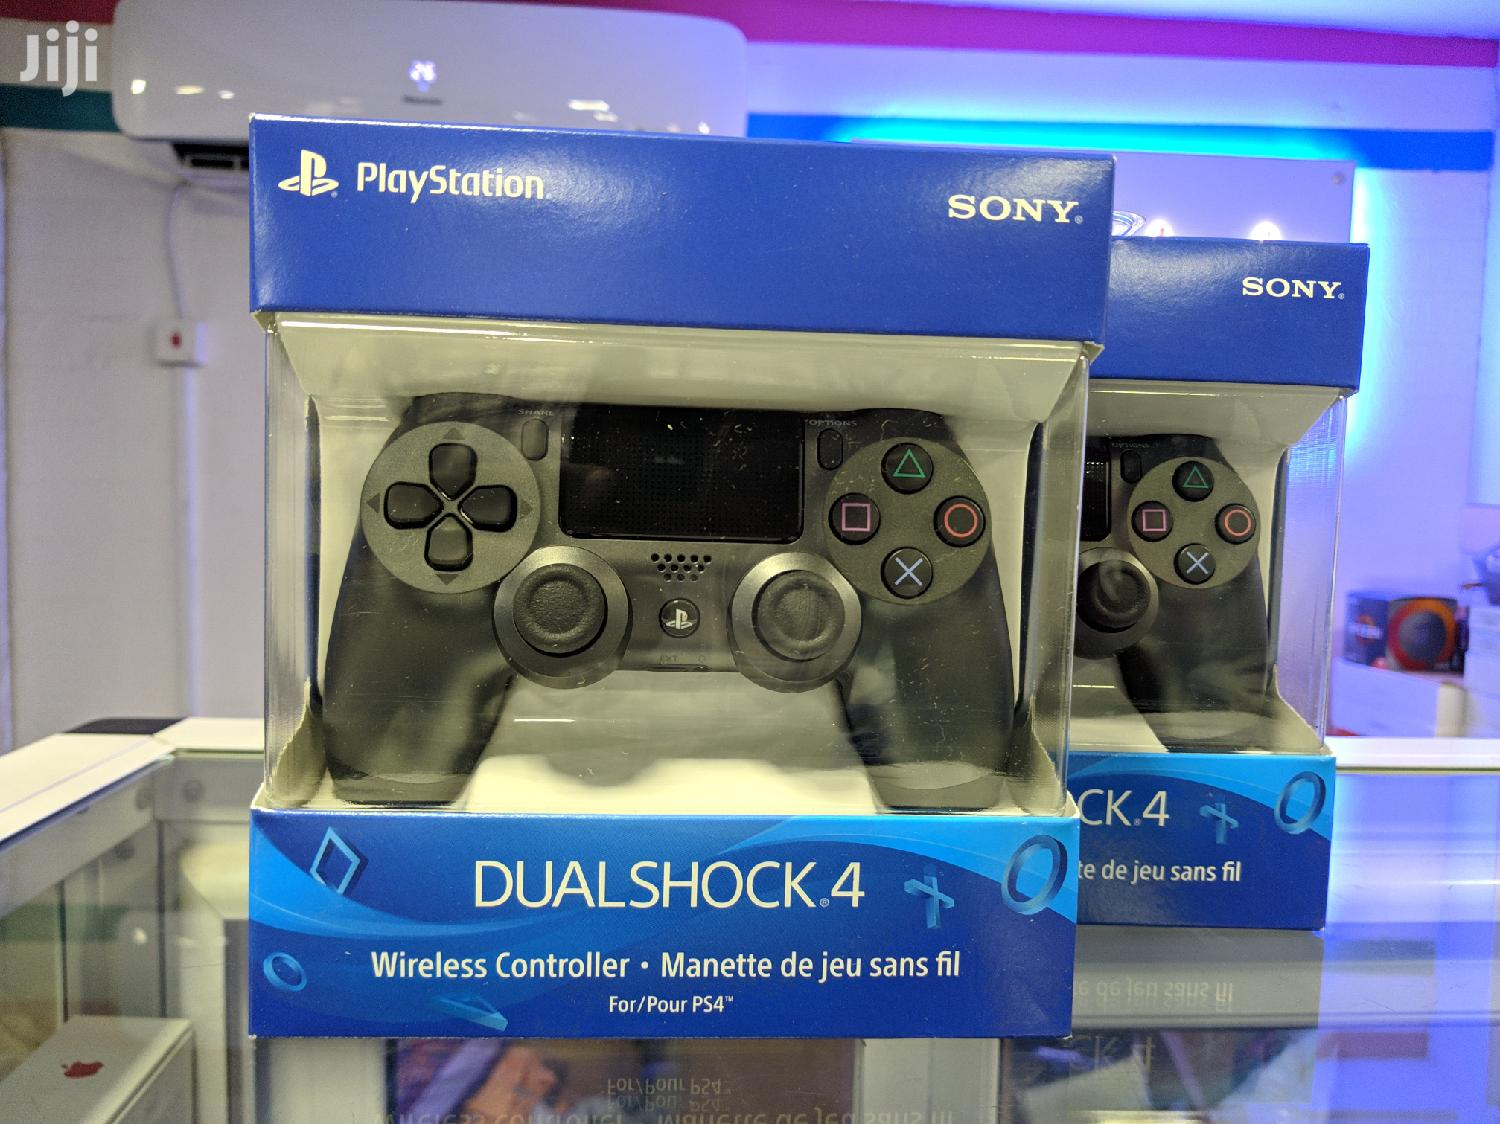 Dualshock 4 Wireless Controller For Playstation 4 | Accessories & Supplies for Electronics for sale in Darkuman, Greater Accra, Ghana